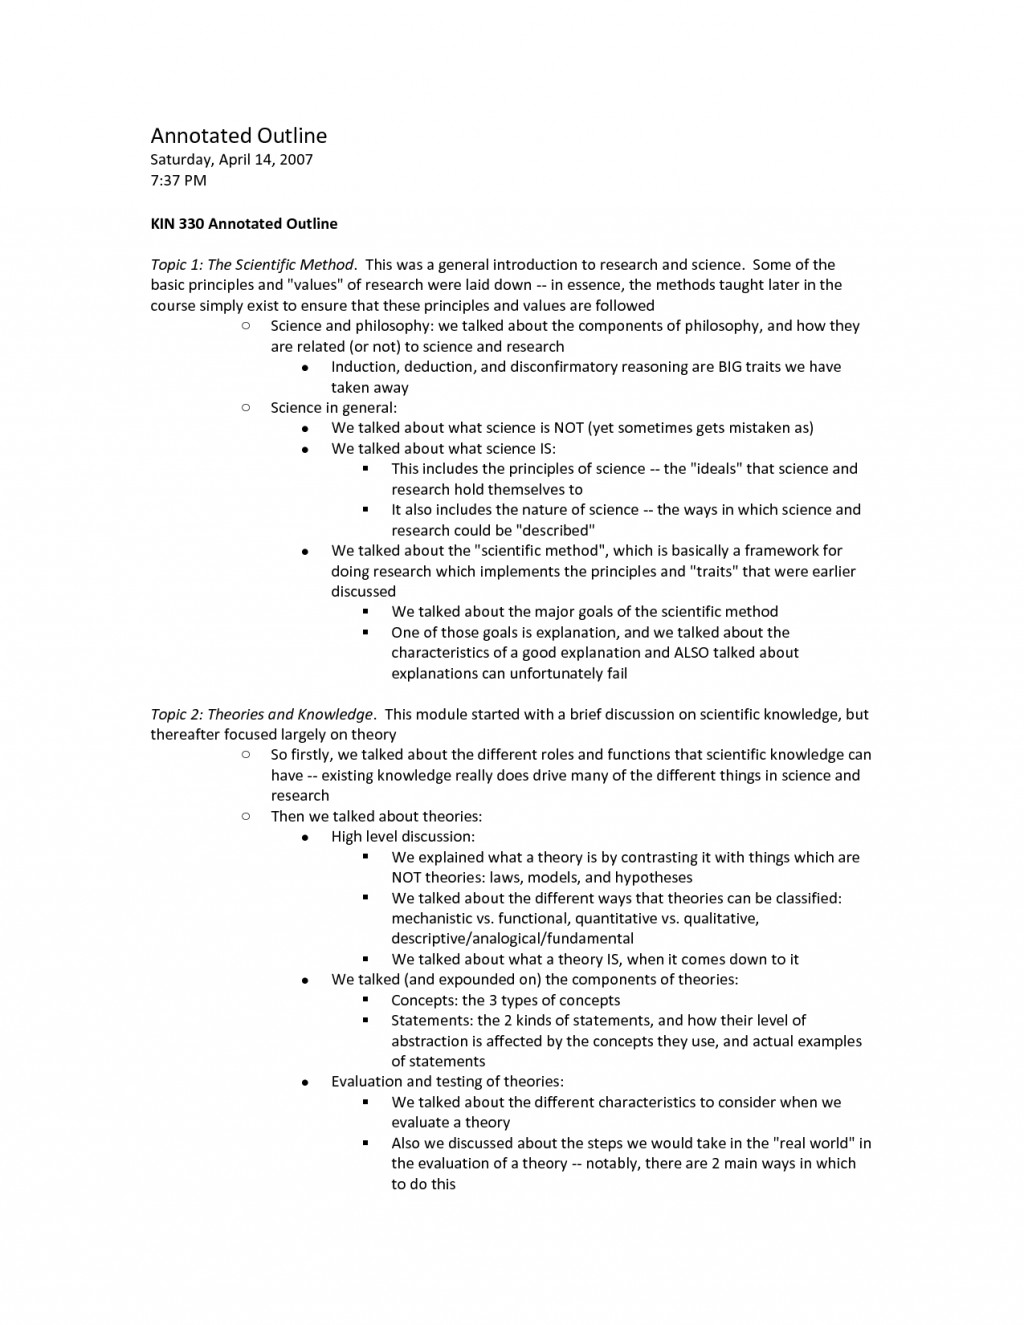 011 Apa Annotated Outline For Research 308696 Example Style Frightening Paper A Guide Writing Papers Format Pdf Large